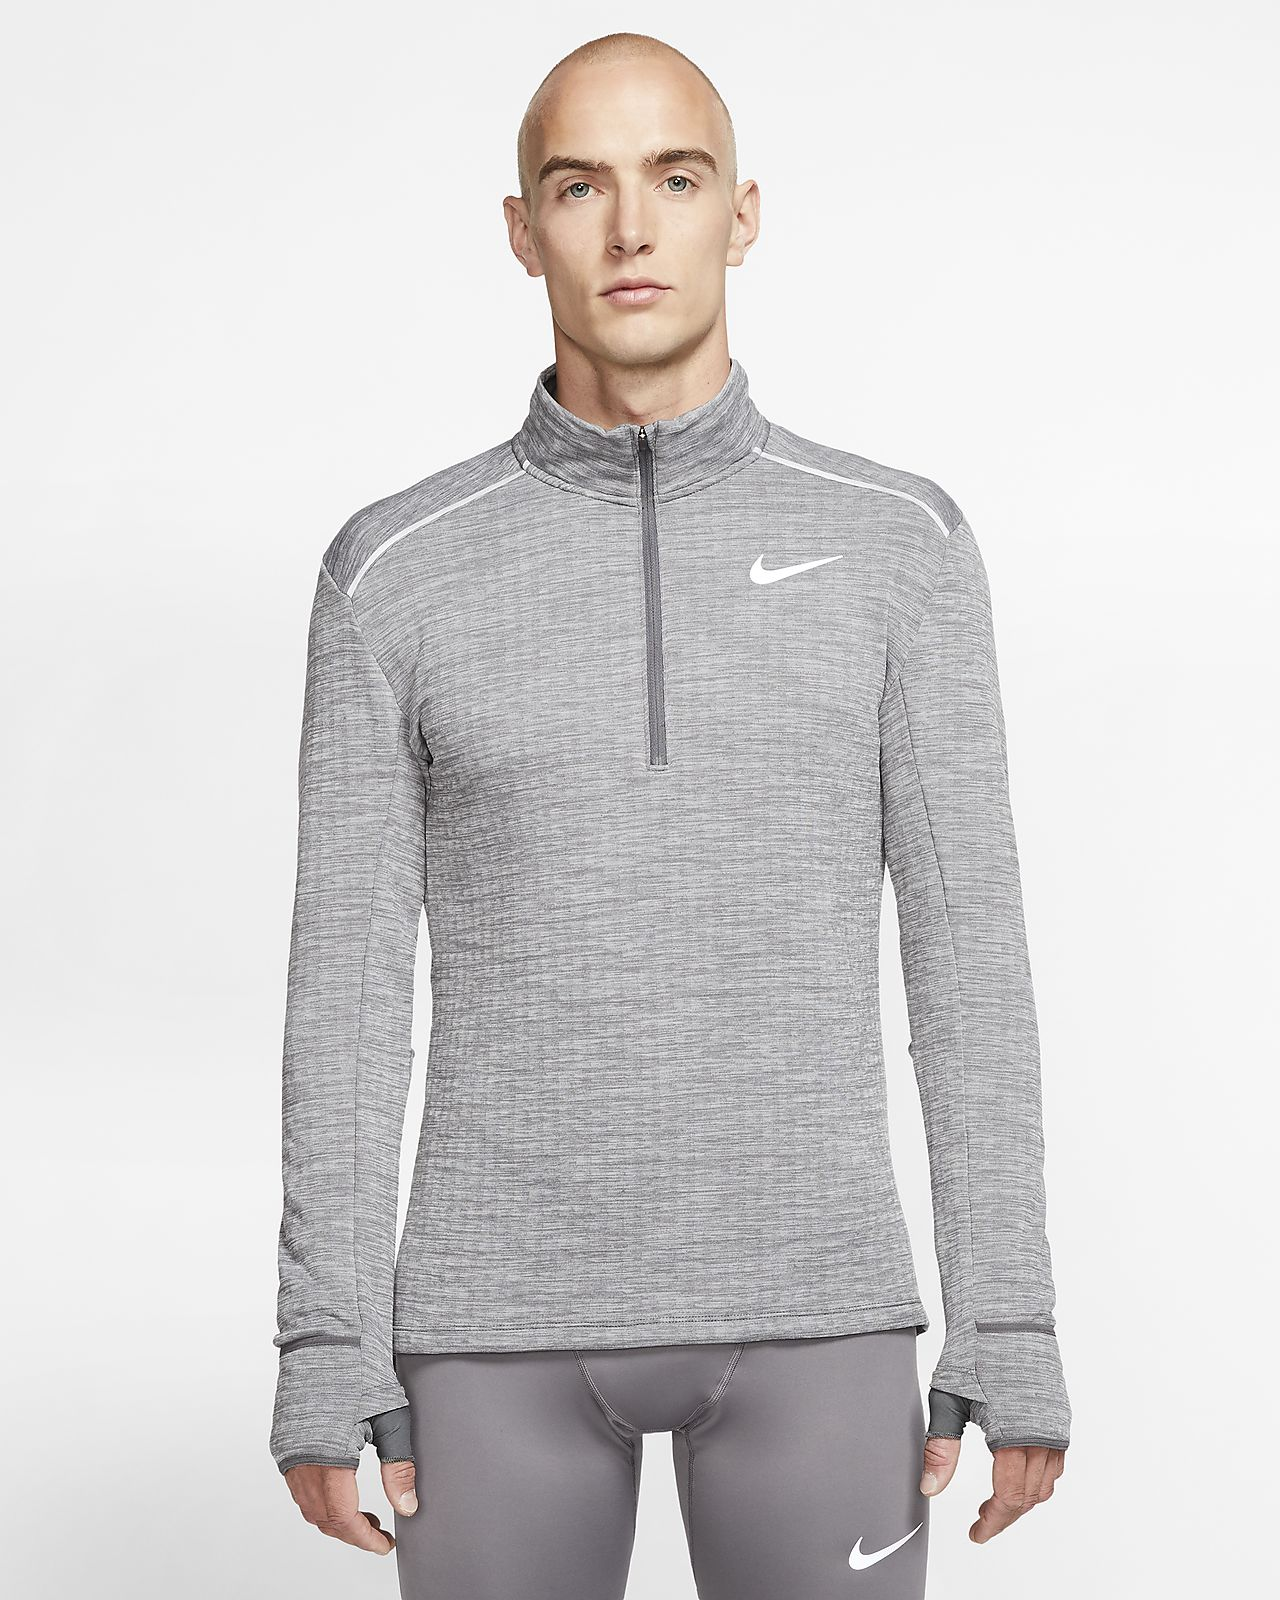 Haut de running à demi-zip Nike Therma Sphere Element 3.0 pour Homme